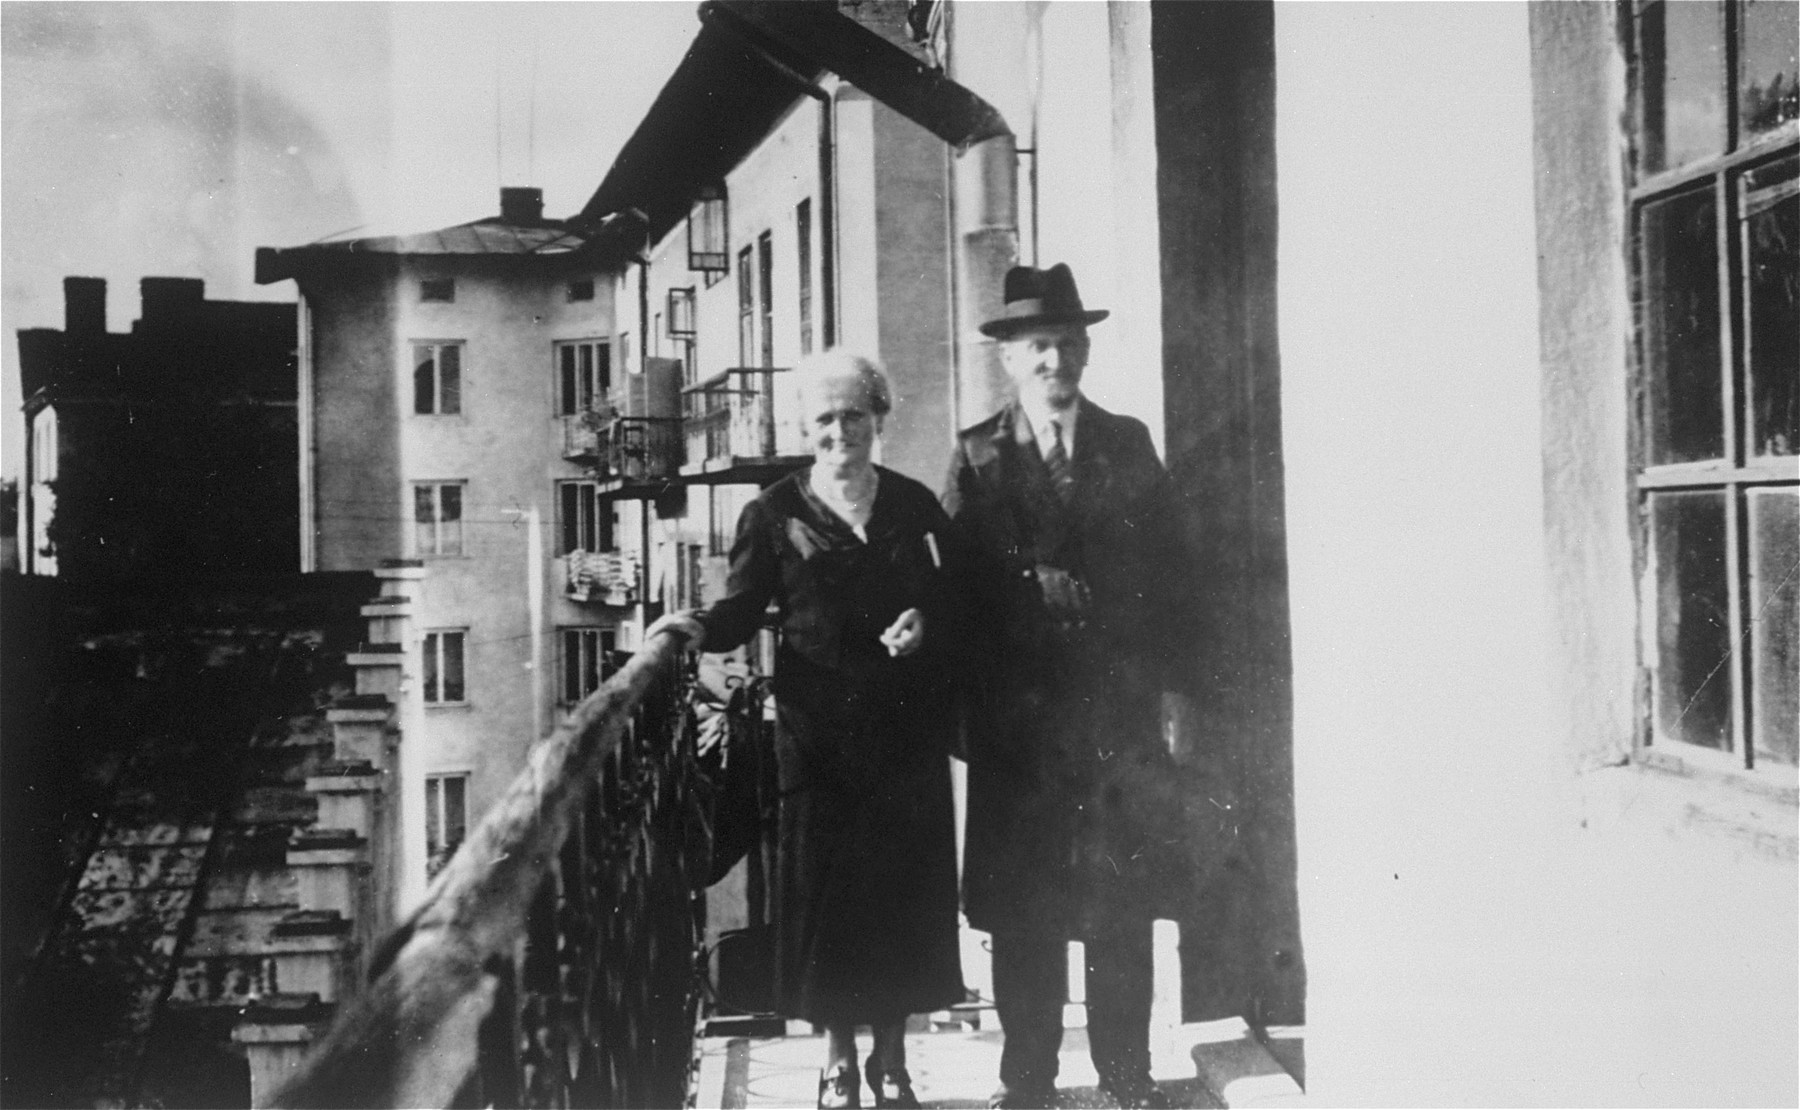 An elderly Jewish couple poses on the balcony of their home in Przemysl, Poland.  Pictured are Jacob and Miriam (Reich) Ringelheim, the donor's grandparents.